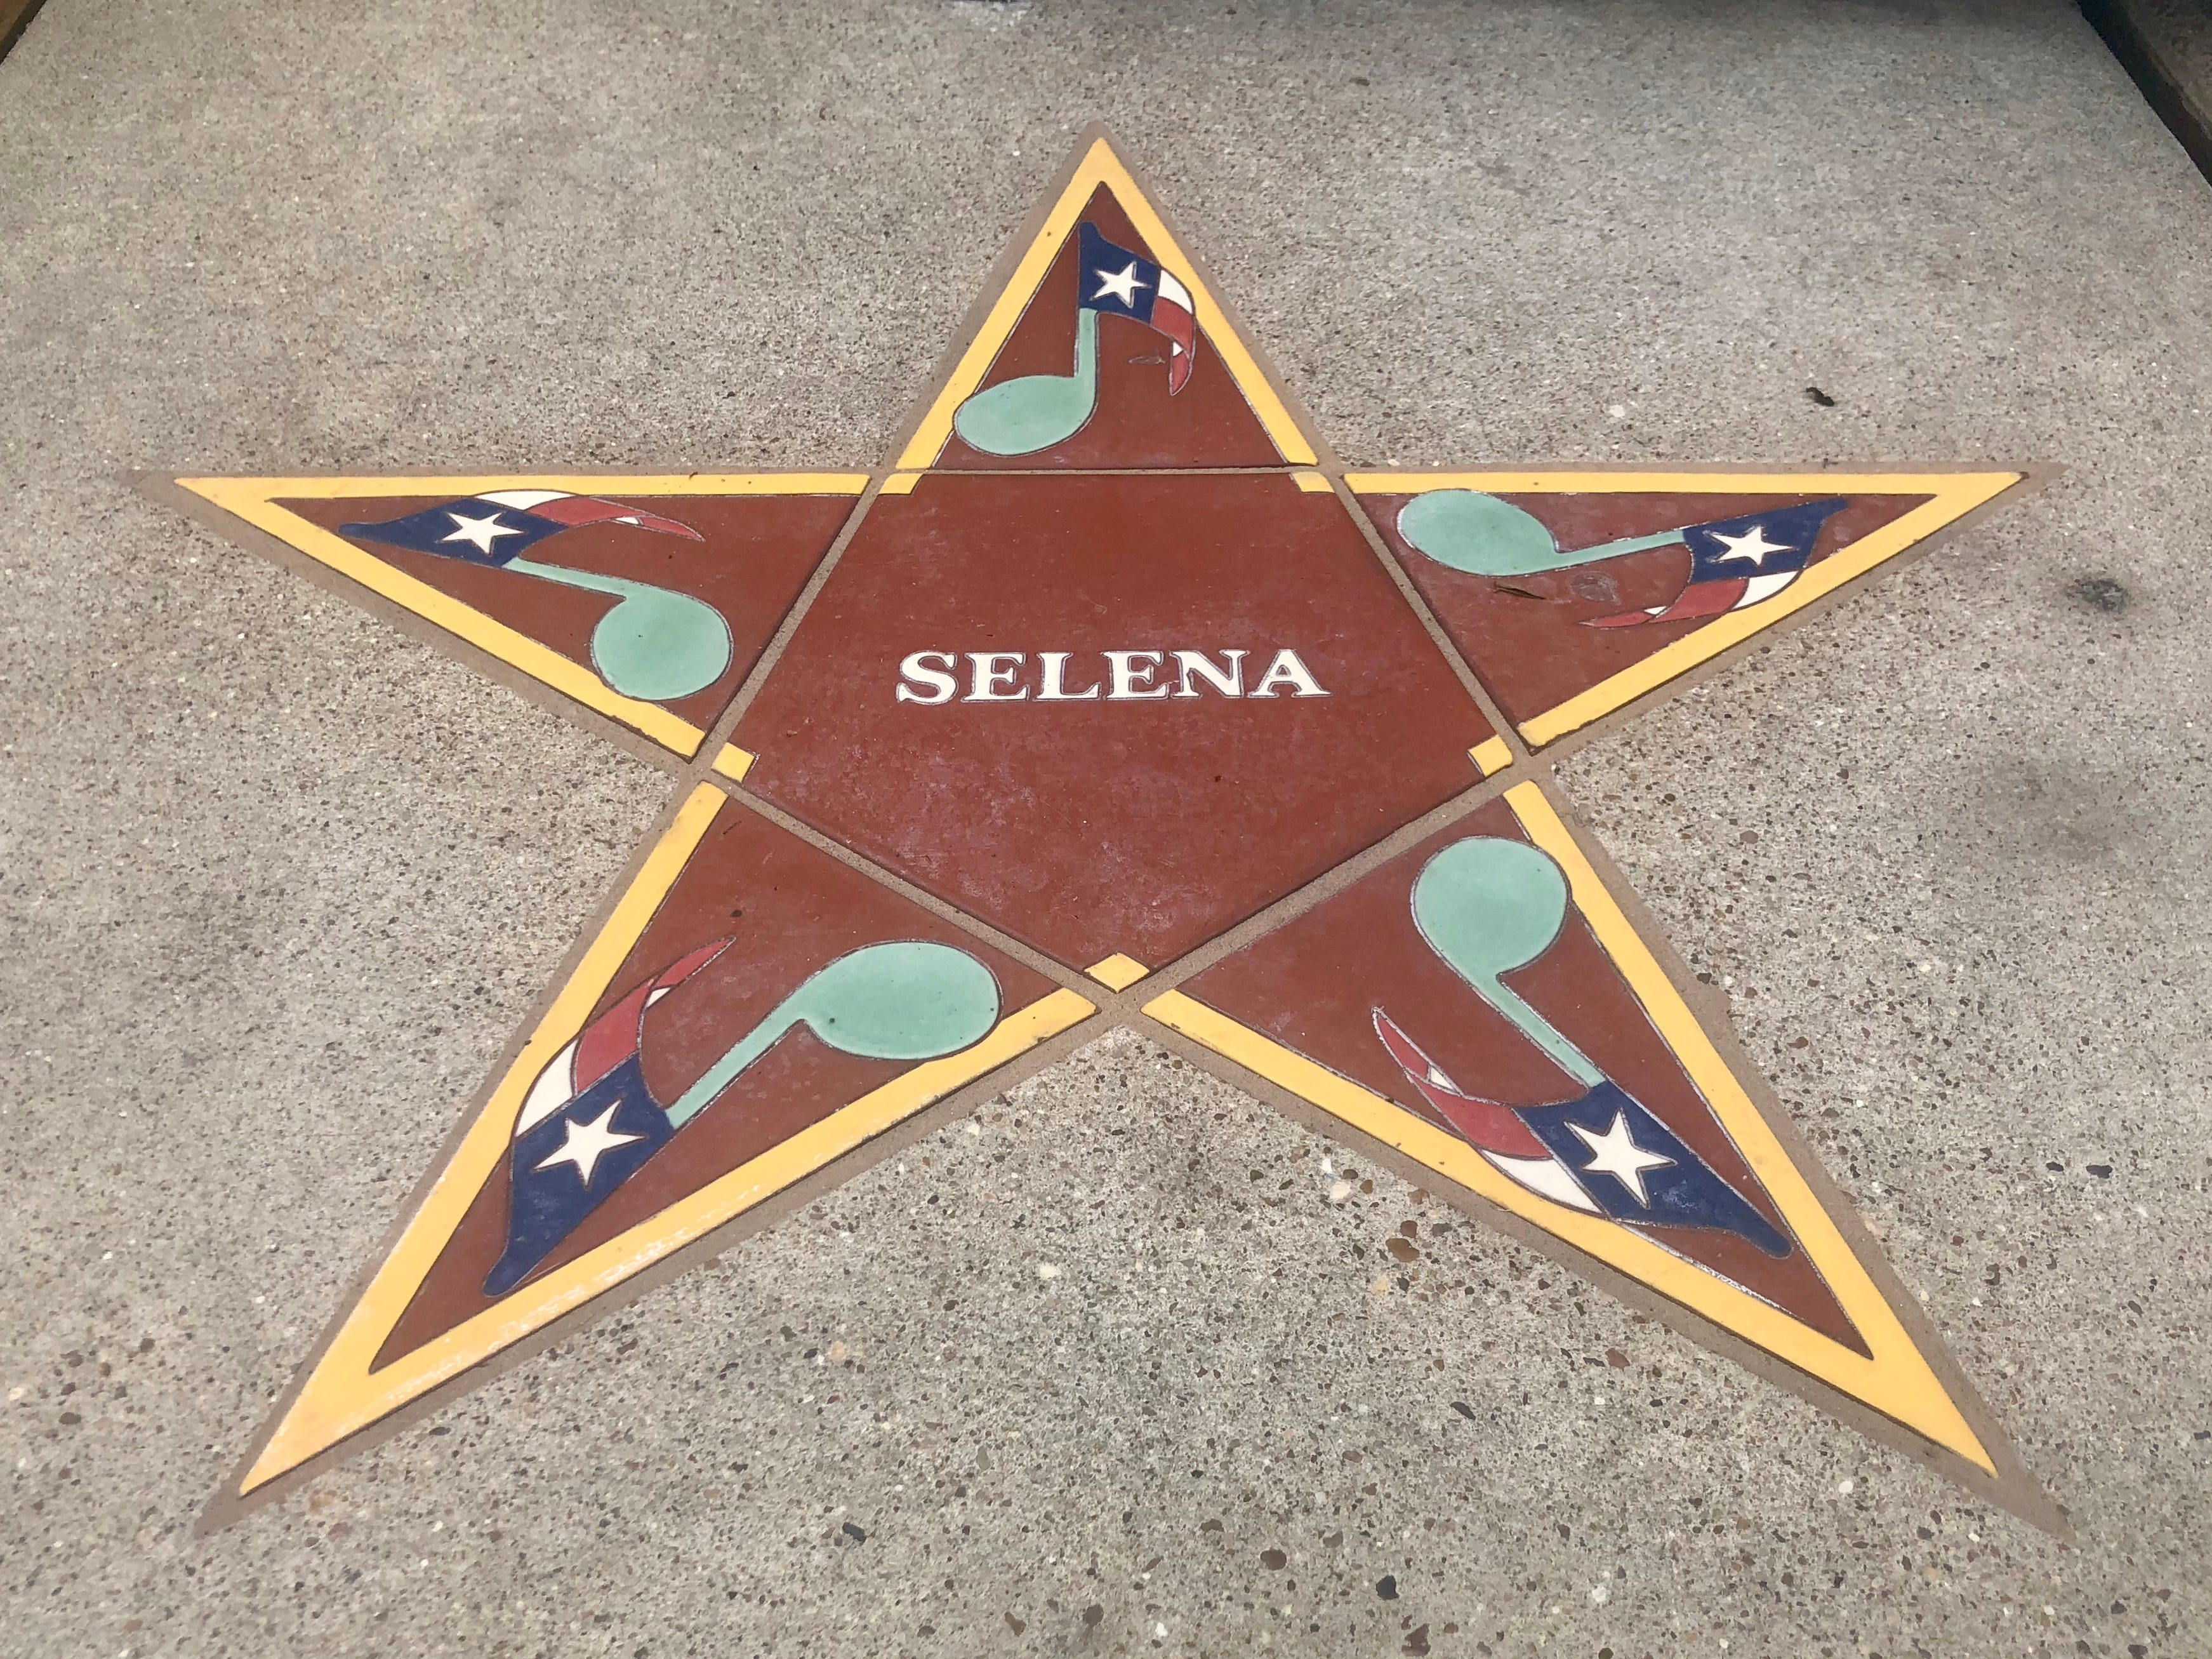 Selena's star at the South Texas Music Walk of Fame.